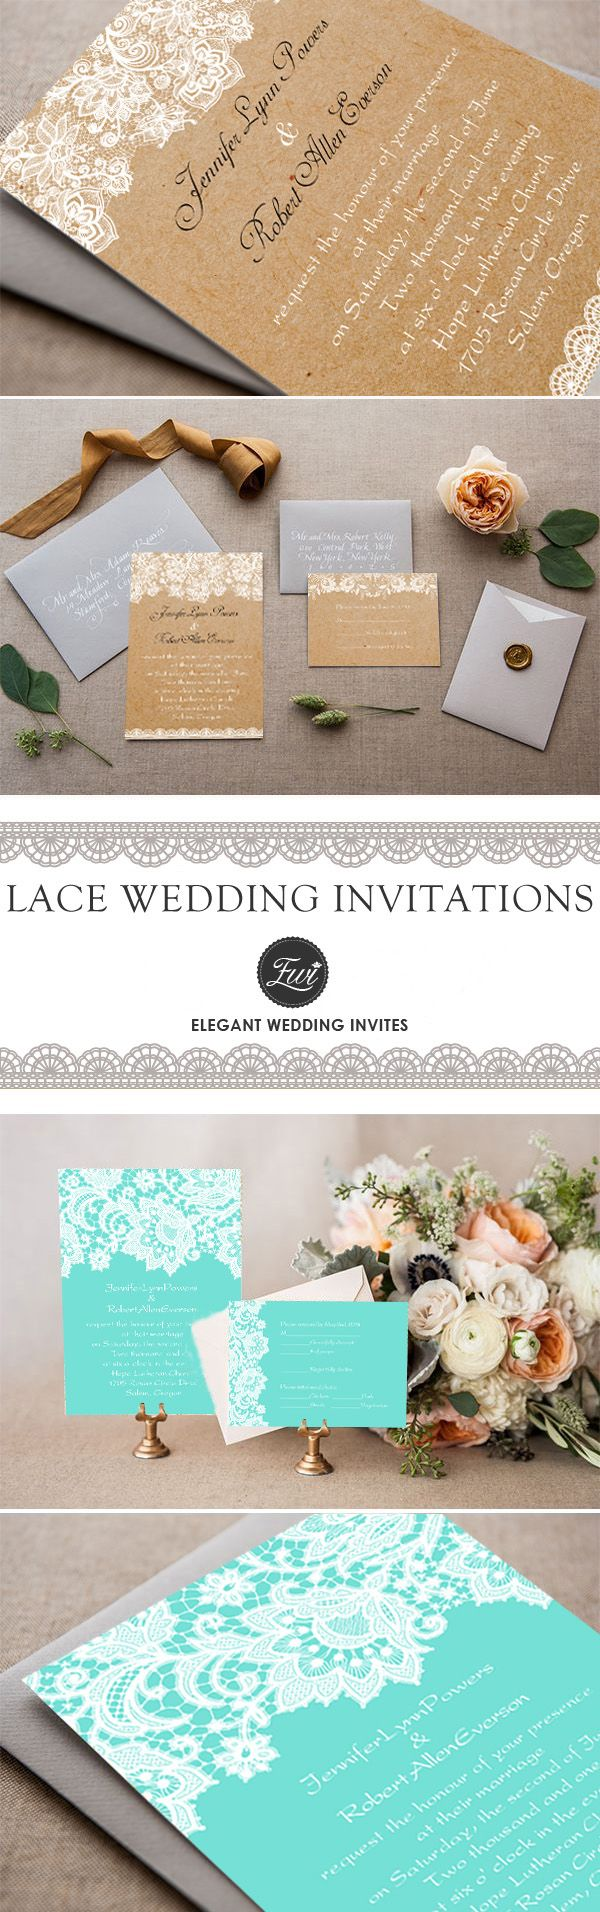 sister wedding invitation card wordings%0A chic rustic elegance custom lace wedding invitations